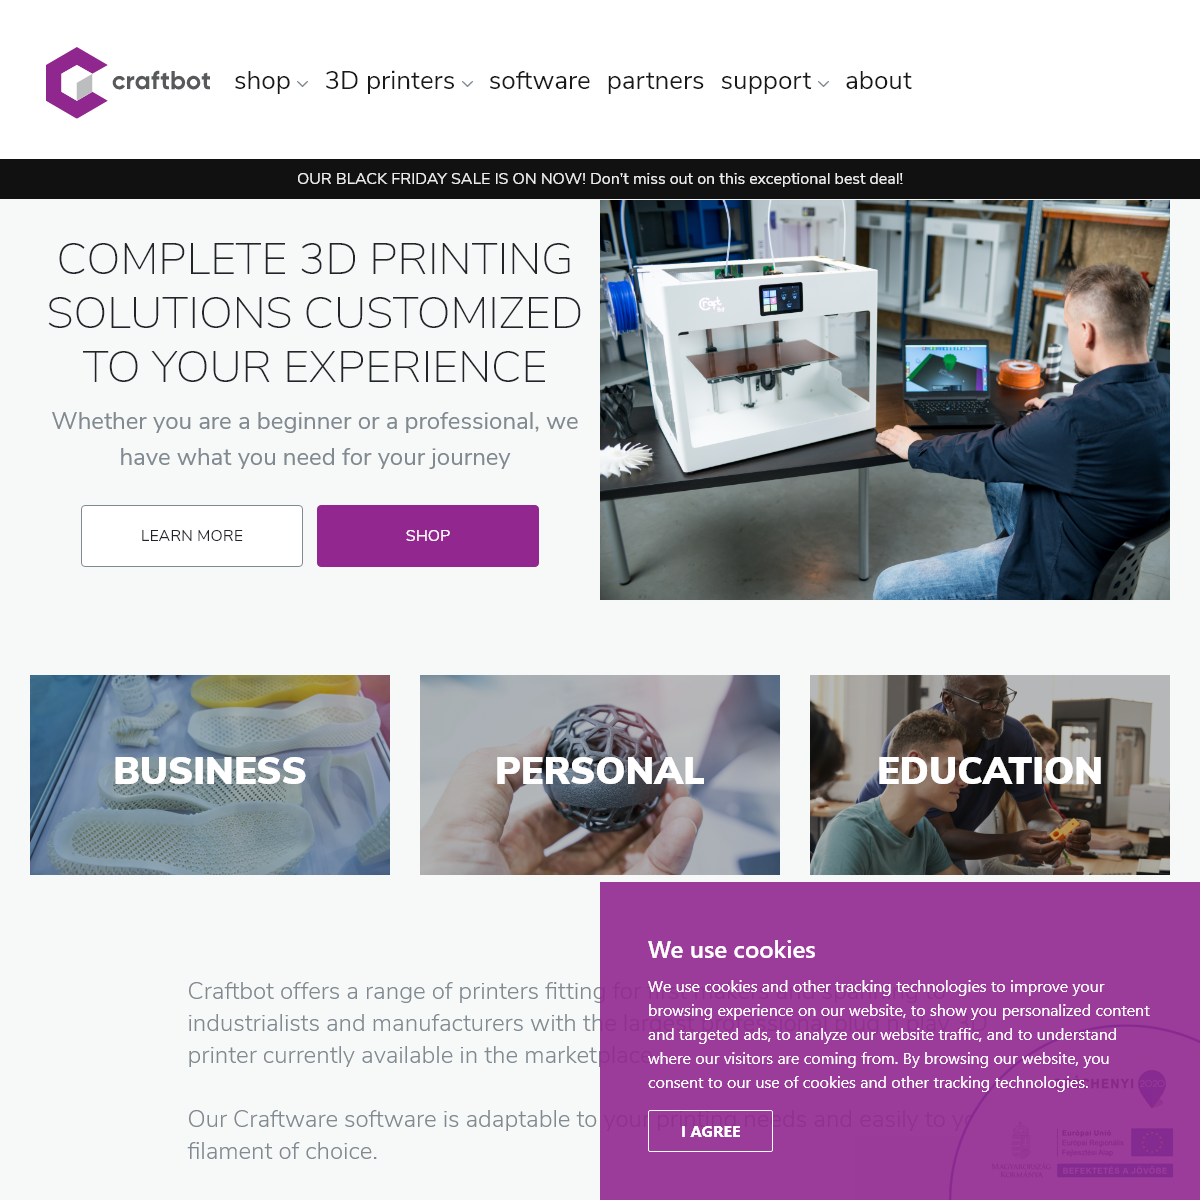 Craftbot - Complete 3D printing solutions customized to your experience.